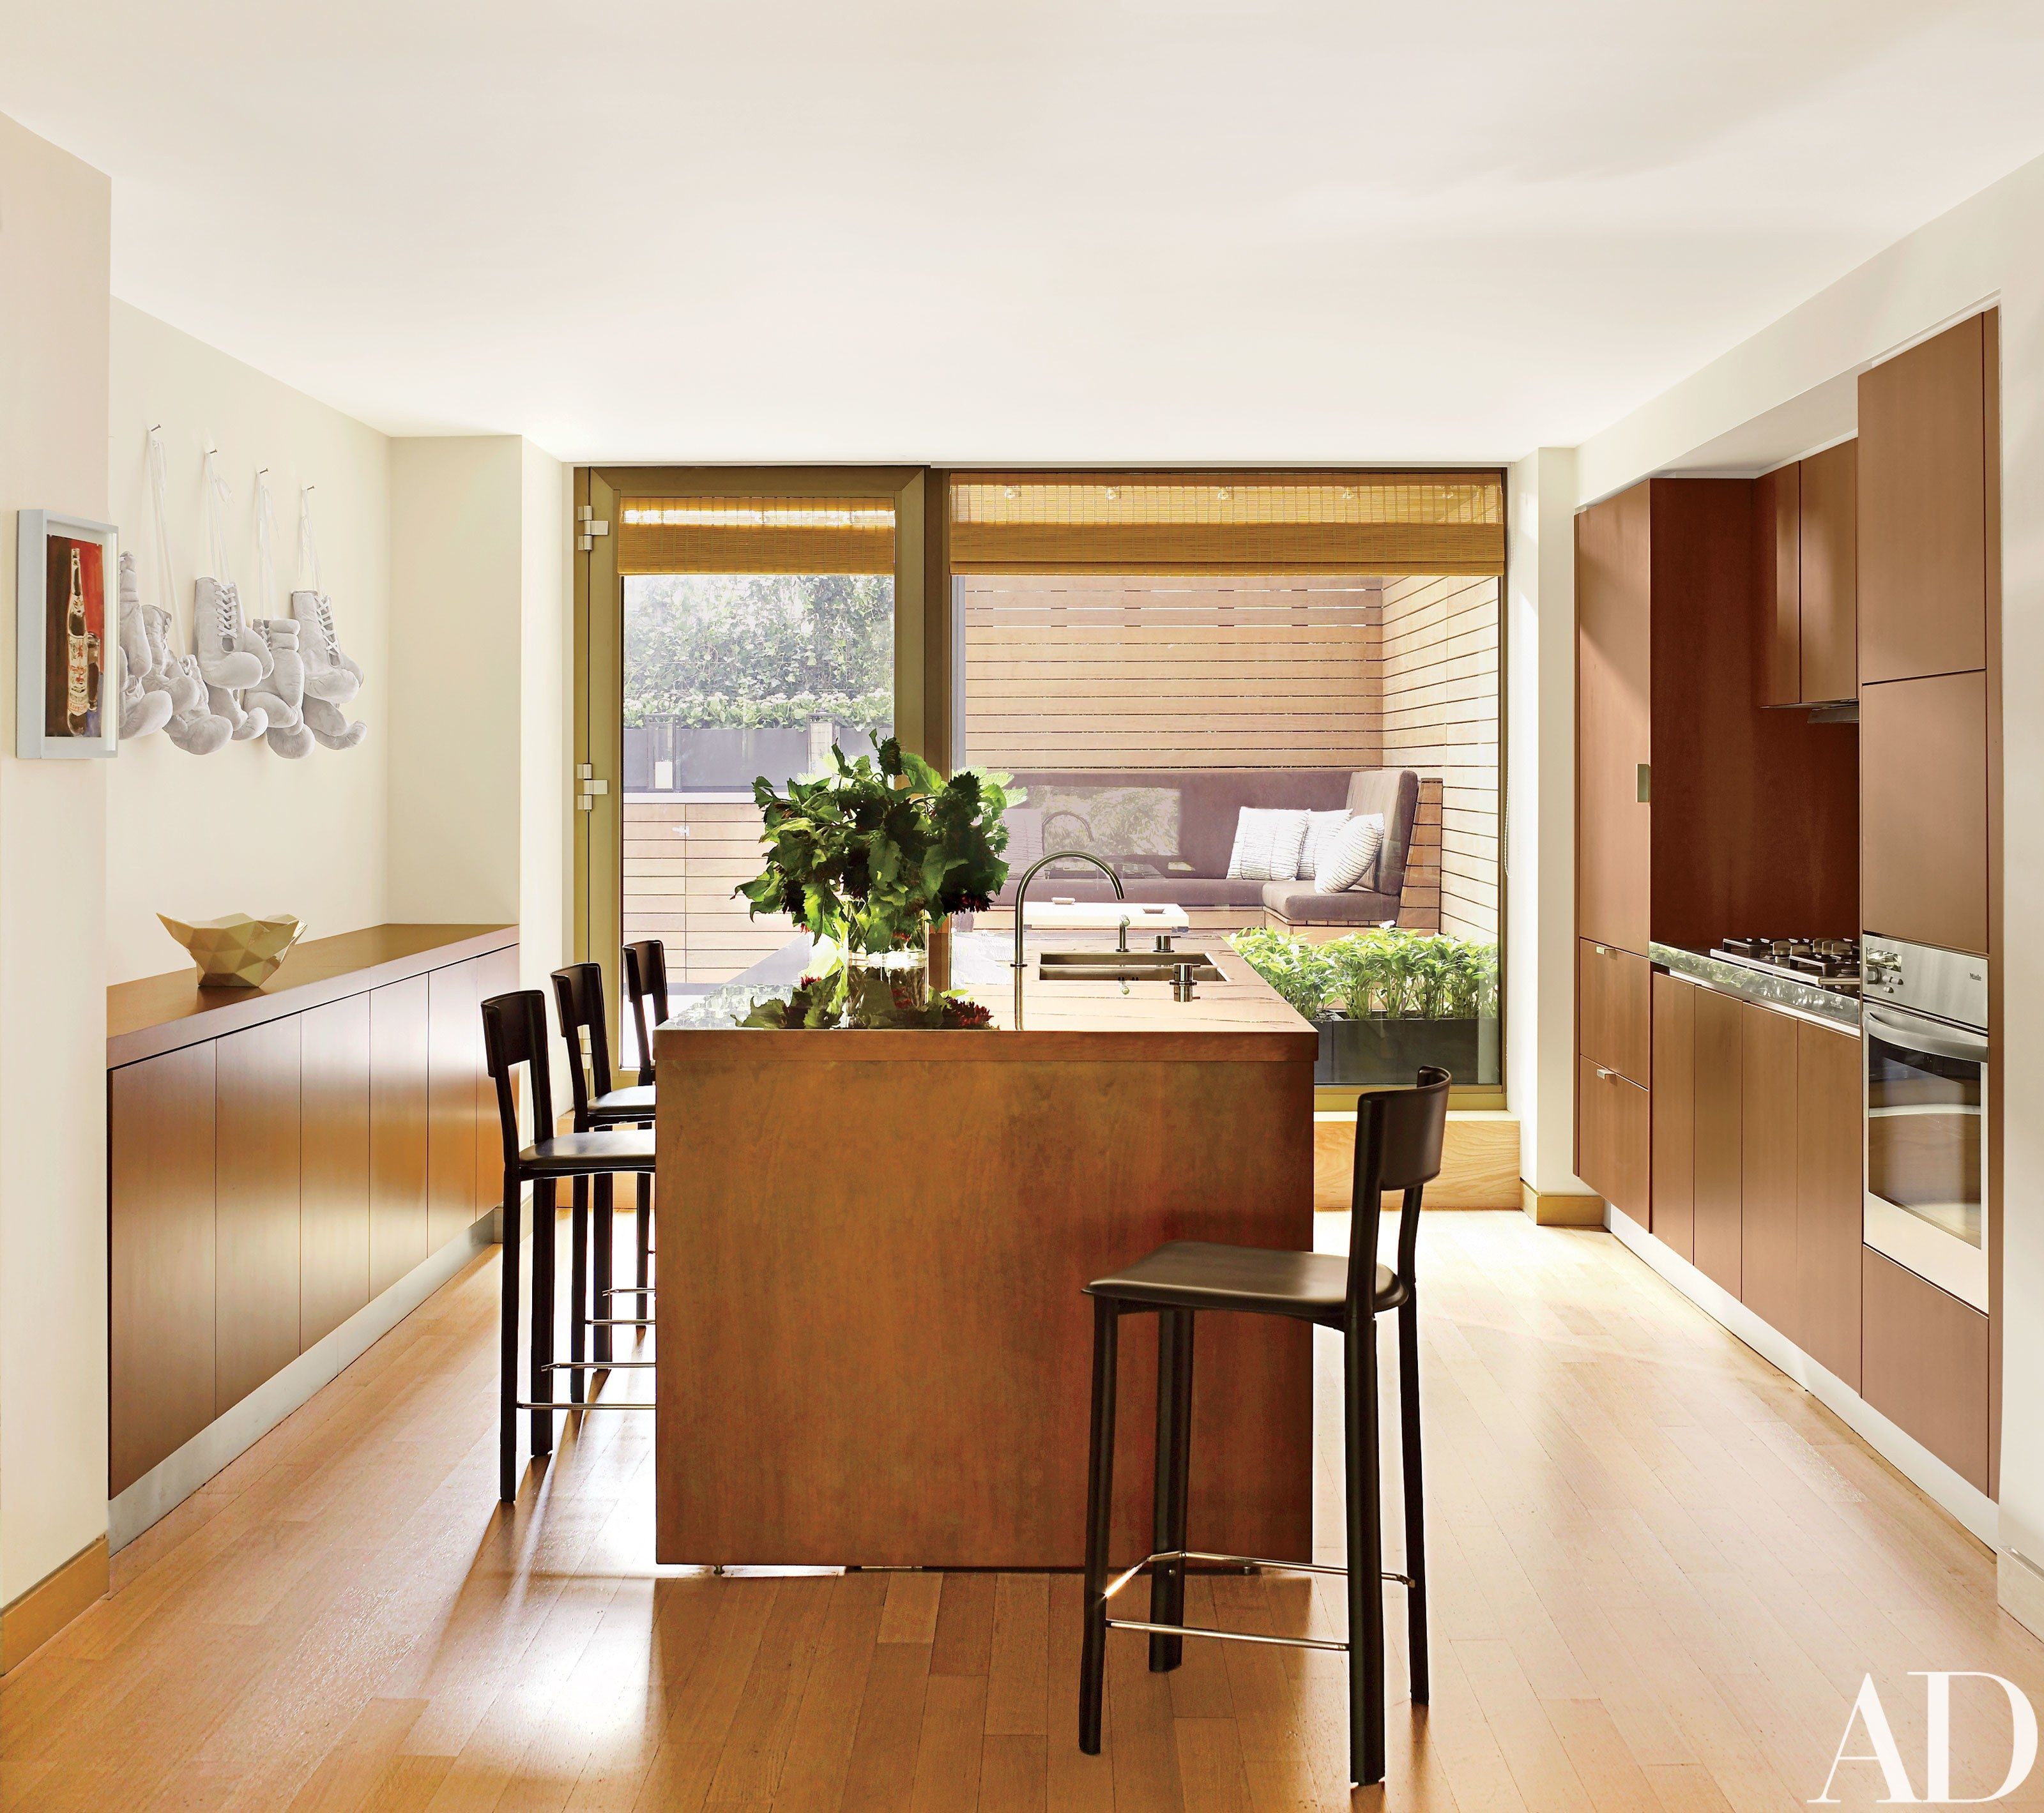 Modern Kitchen Images Architectural Digest john pawson transforms a gramercy park apartment into a coveted